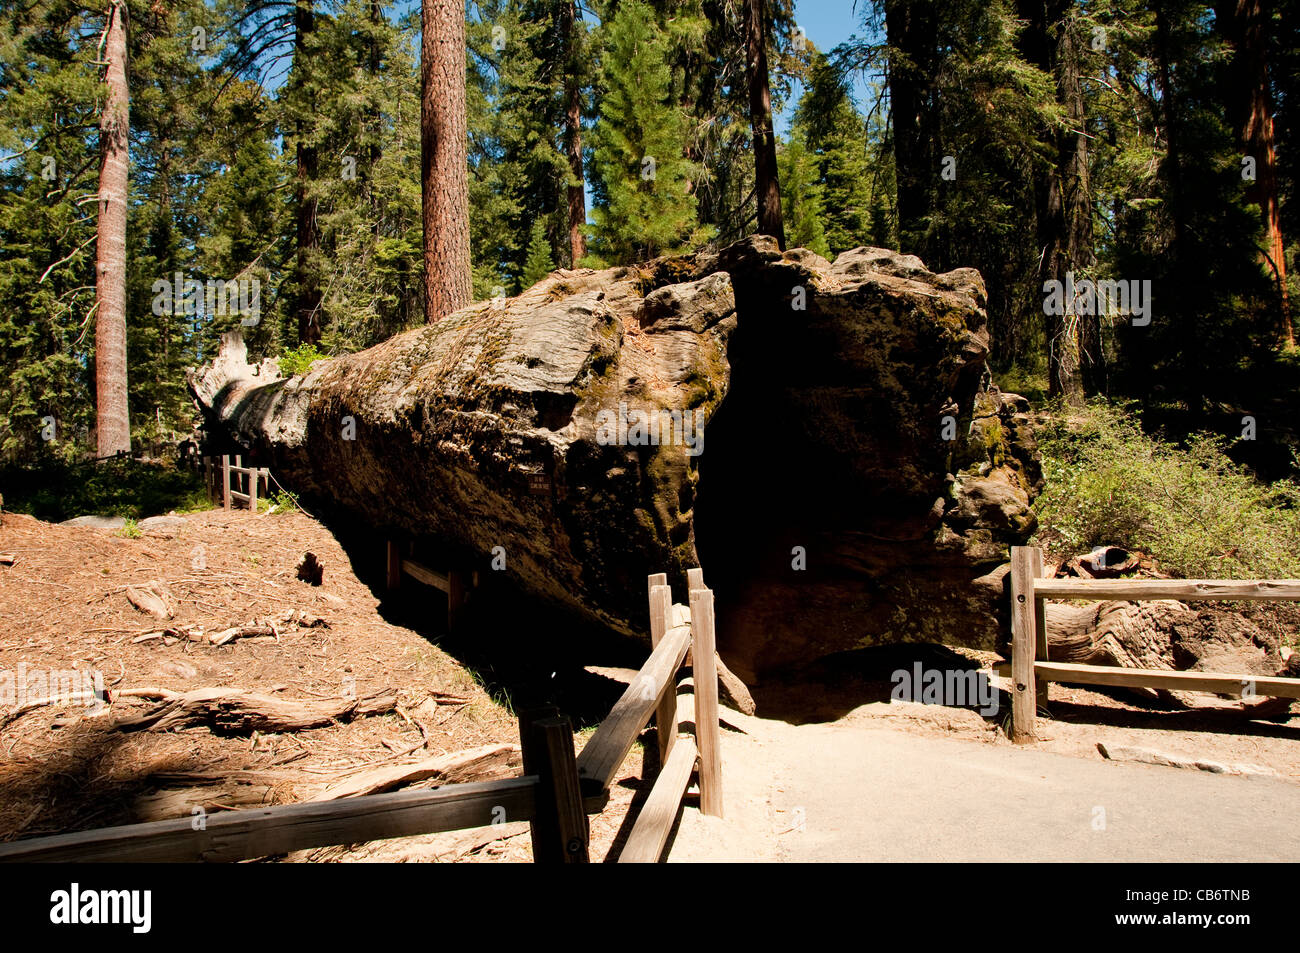 Fallen Monarch giant sequoia tree Kings Canyon National Park, California Stock Photo